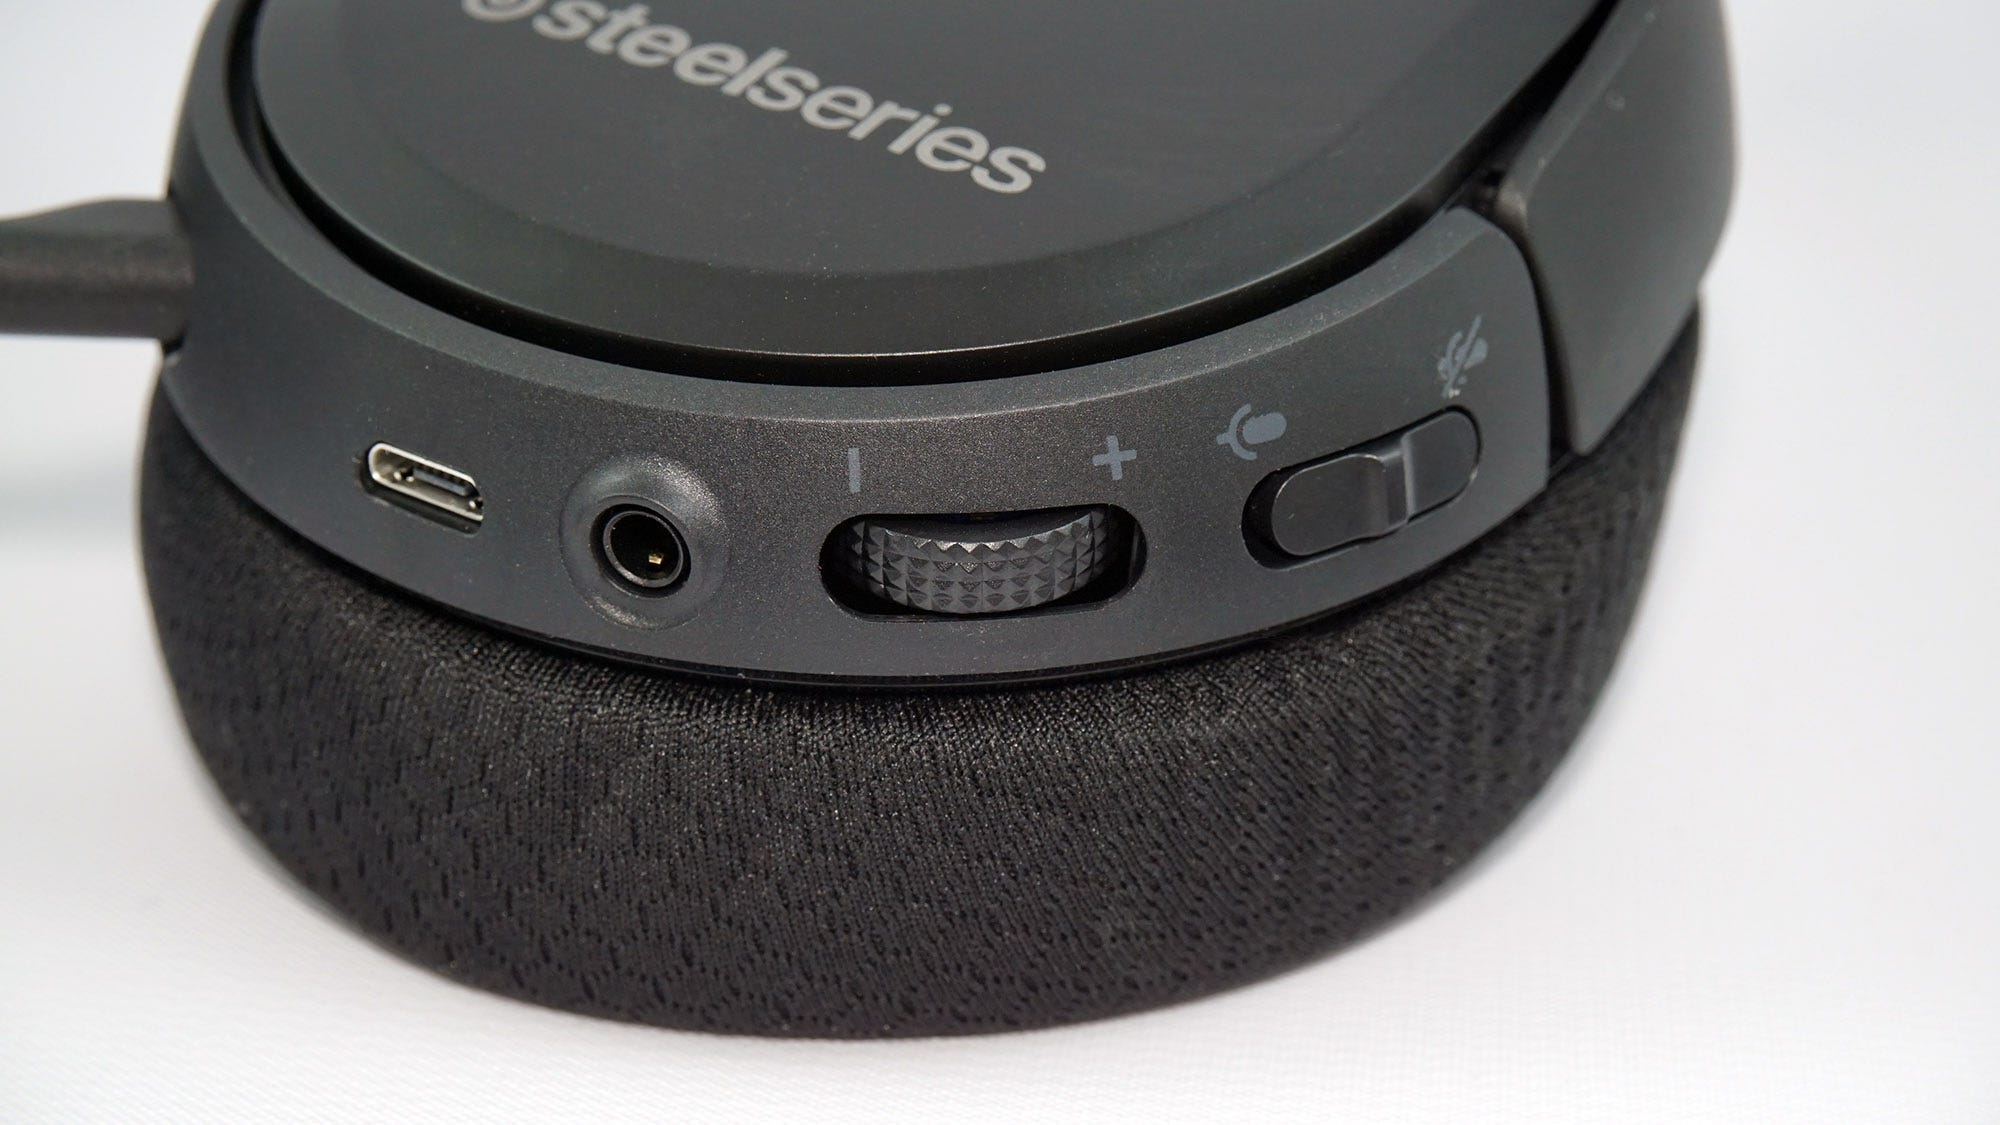 The volume controls on the SteelSeries Arctis 1 Headset.